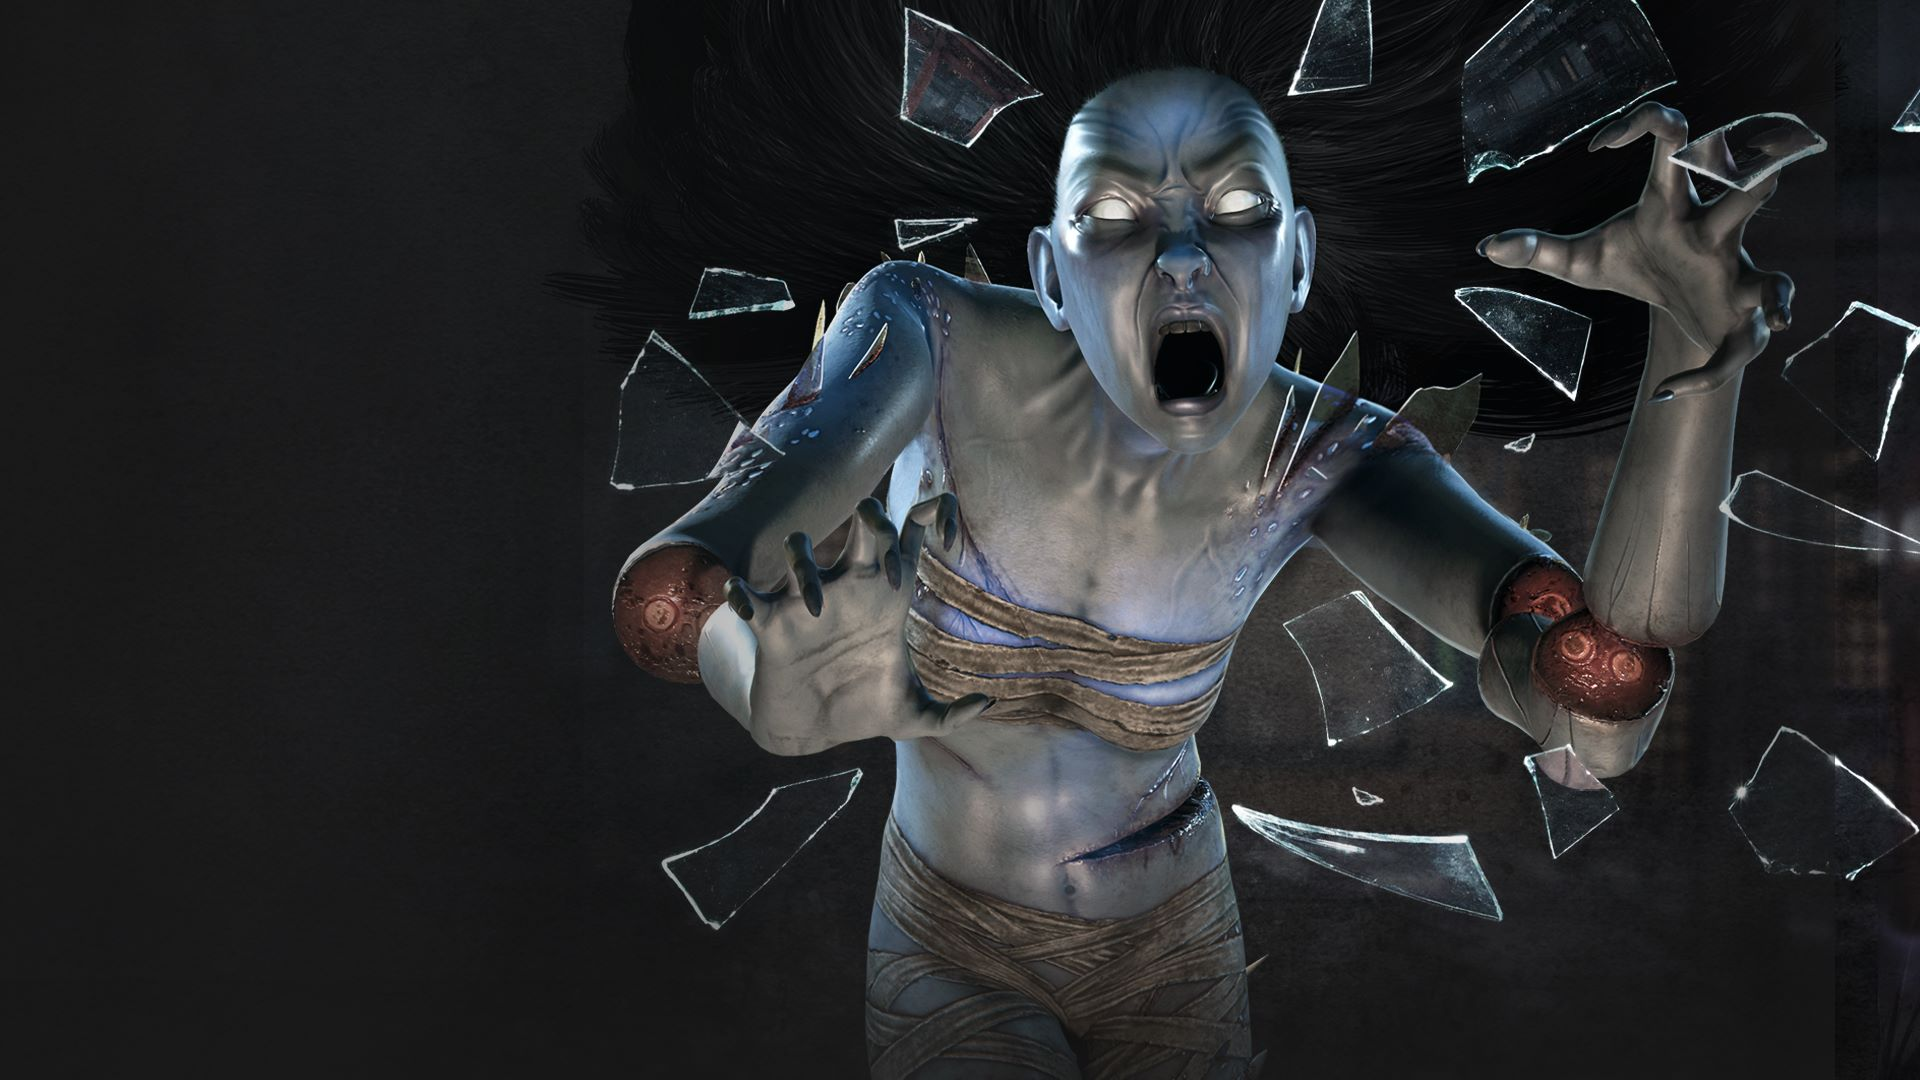 Shattered Bloodline brings new killer, survivor and map to ... on night map, evolve map, end of days map, hohokum map, no man's sky map, contrast map, sunlight map, everybody's gone to the rapture map, safe map, mikey map, graphic maps, maps map, appleseed map, the map room, world of maps, life is strange map, judge dredd map, maps & geography, outline maps, the sims 4 map, dragon age: inquisition map, hall of fame map, lords of the fallen map, maroon 5 map, call of juarez map,